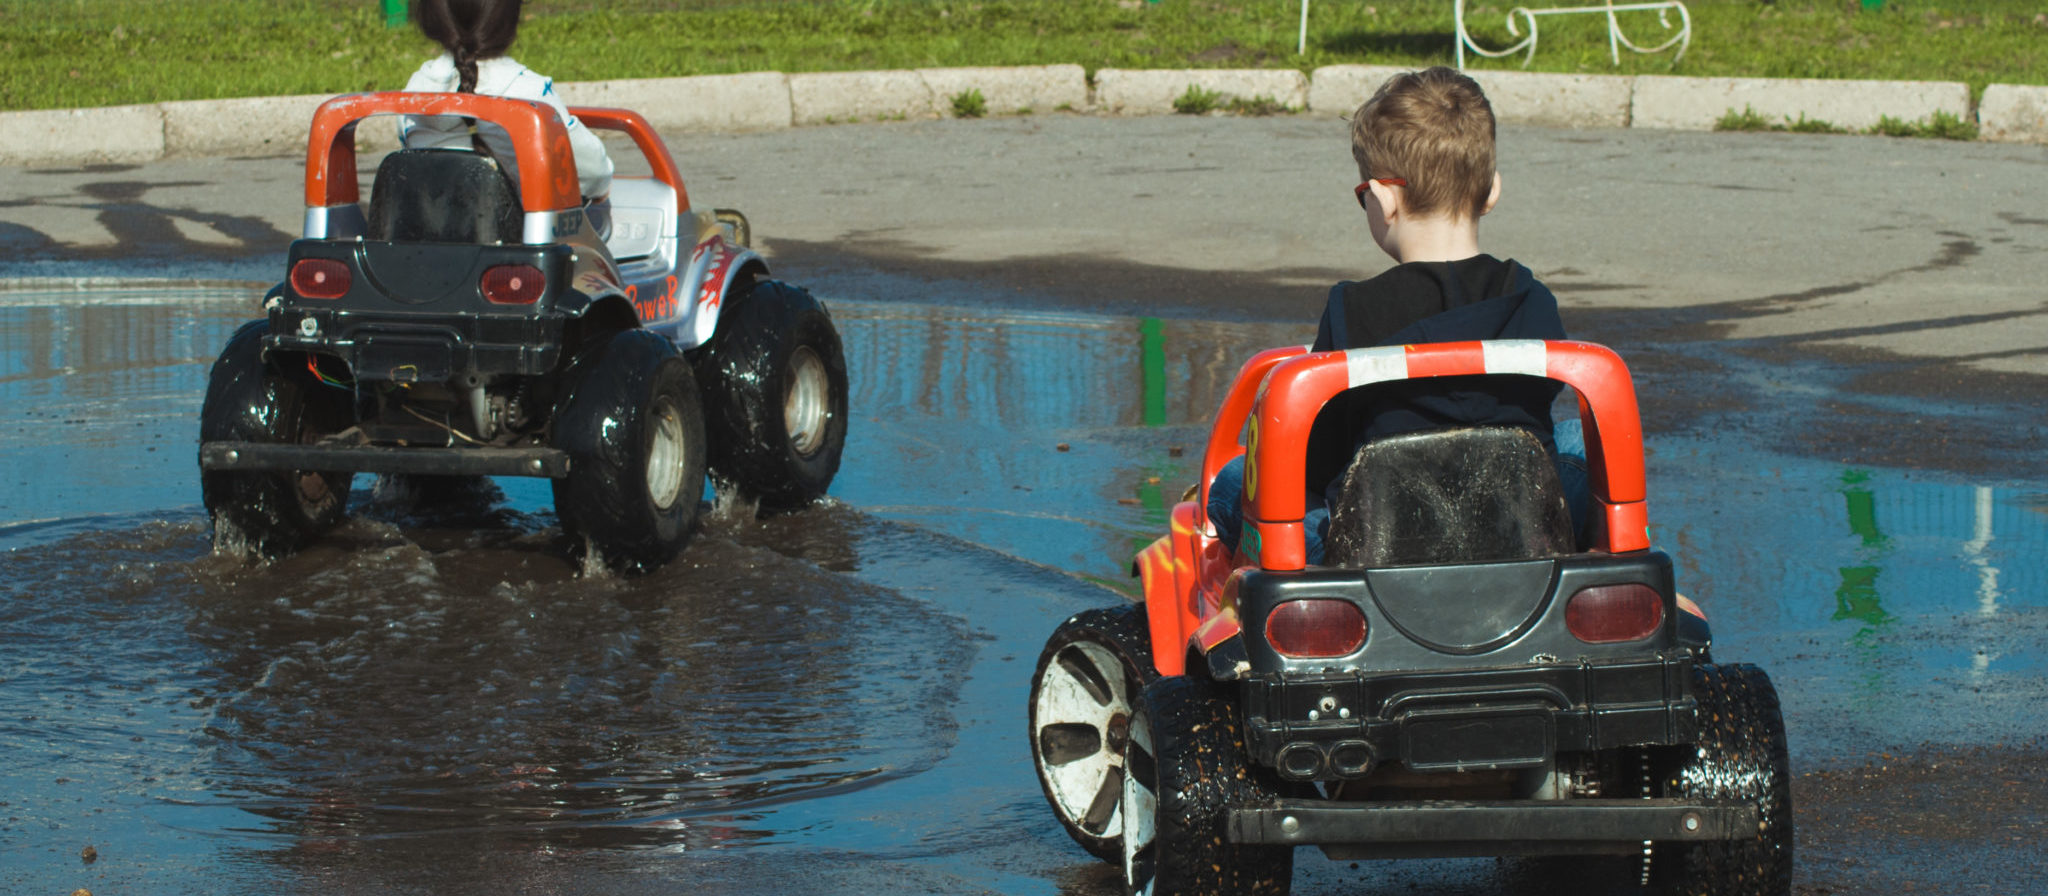 Take your kid to the park and let them tear it up in their 24V ride on car with remote control.